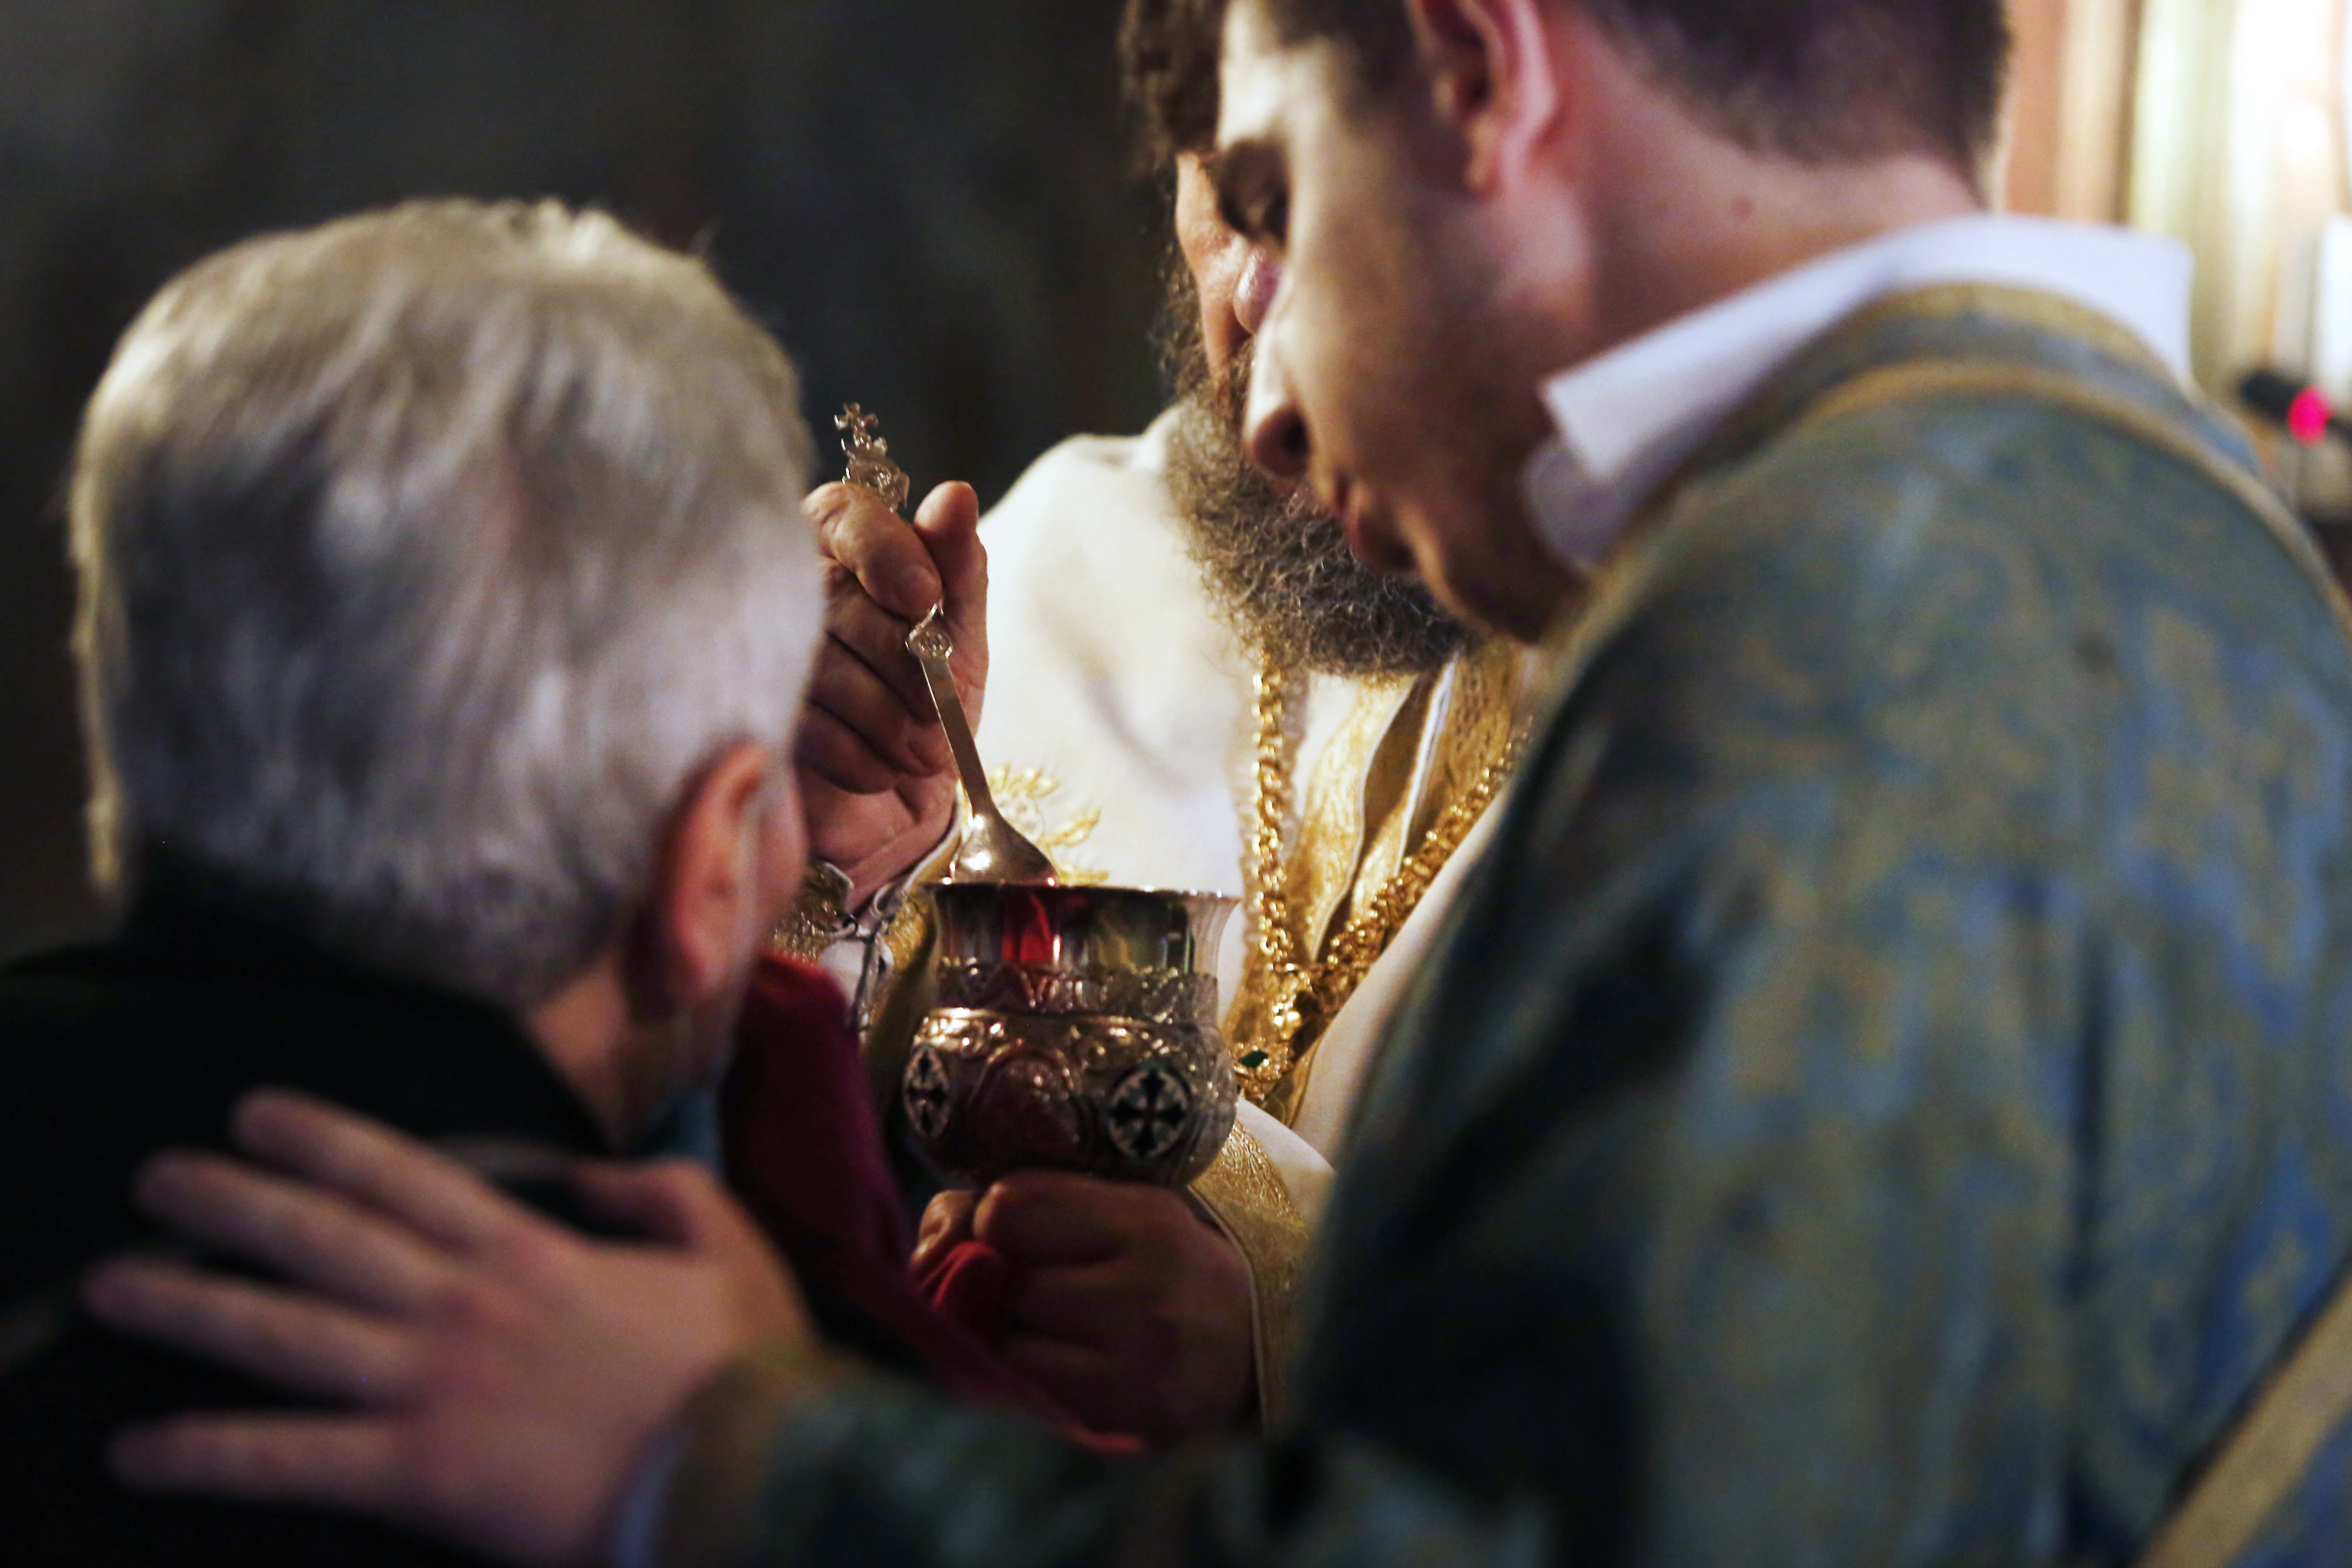 In this Sunday, May 24, 2020, photo, a Greek Orthodox priest uses a traditional shared spoon to distribute Holy Communion during Sunday Mass in the northern city of Thessaloniki, Greece. Contrary to science, the Greek Orthodox Church says it is impossible for any disease, including the coronavirus, to be transmitted through Holy Communion. (AP Photo/Giannis Papanikos)